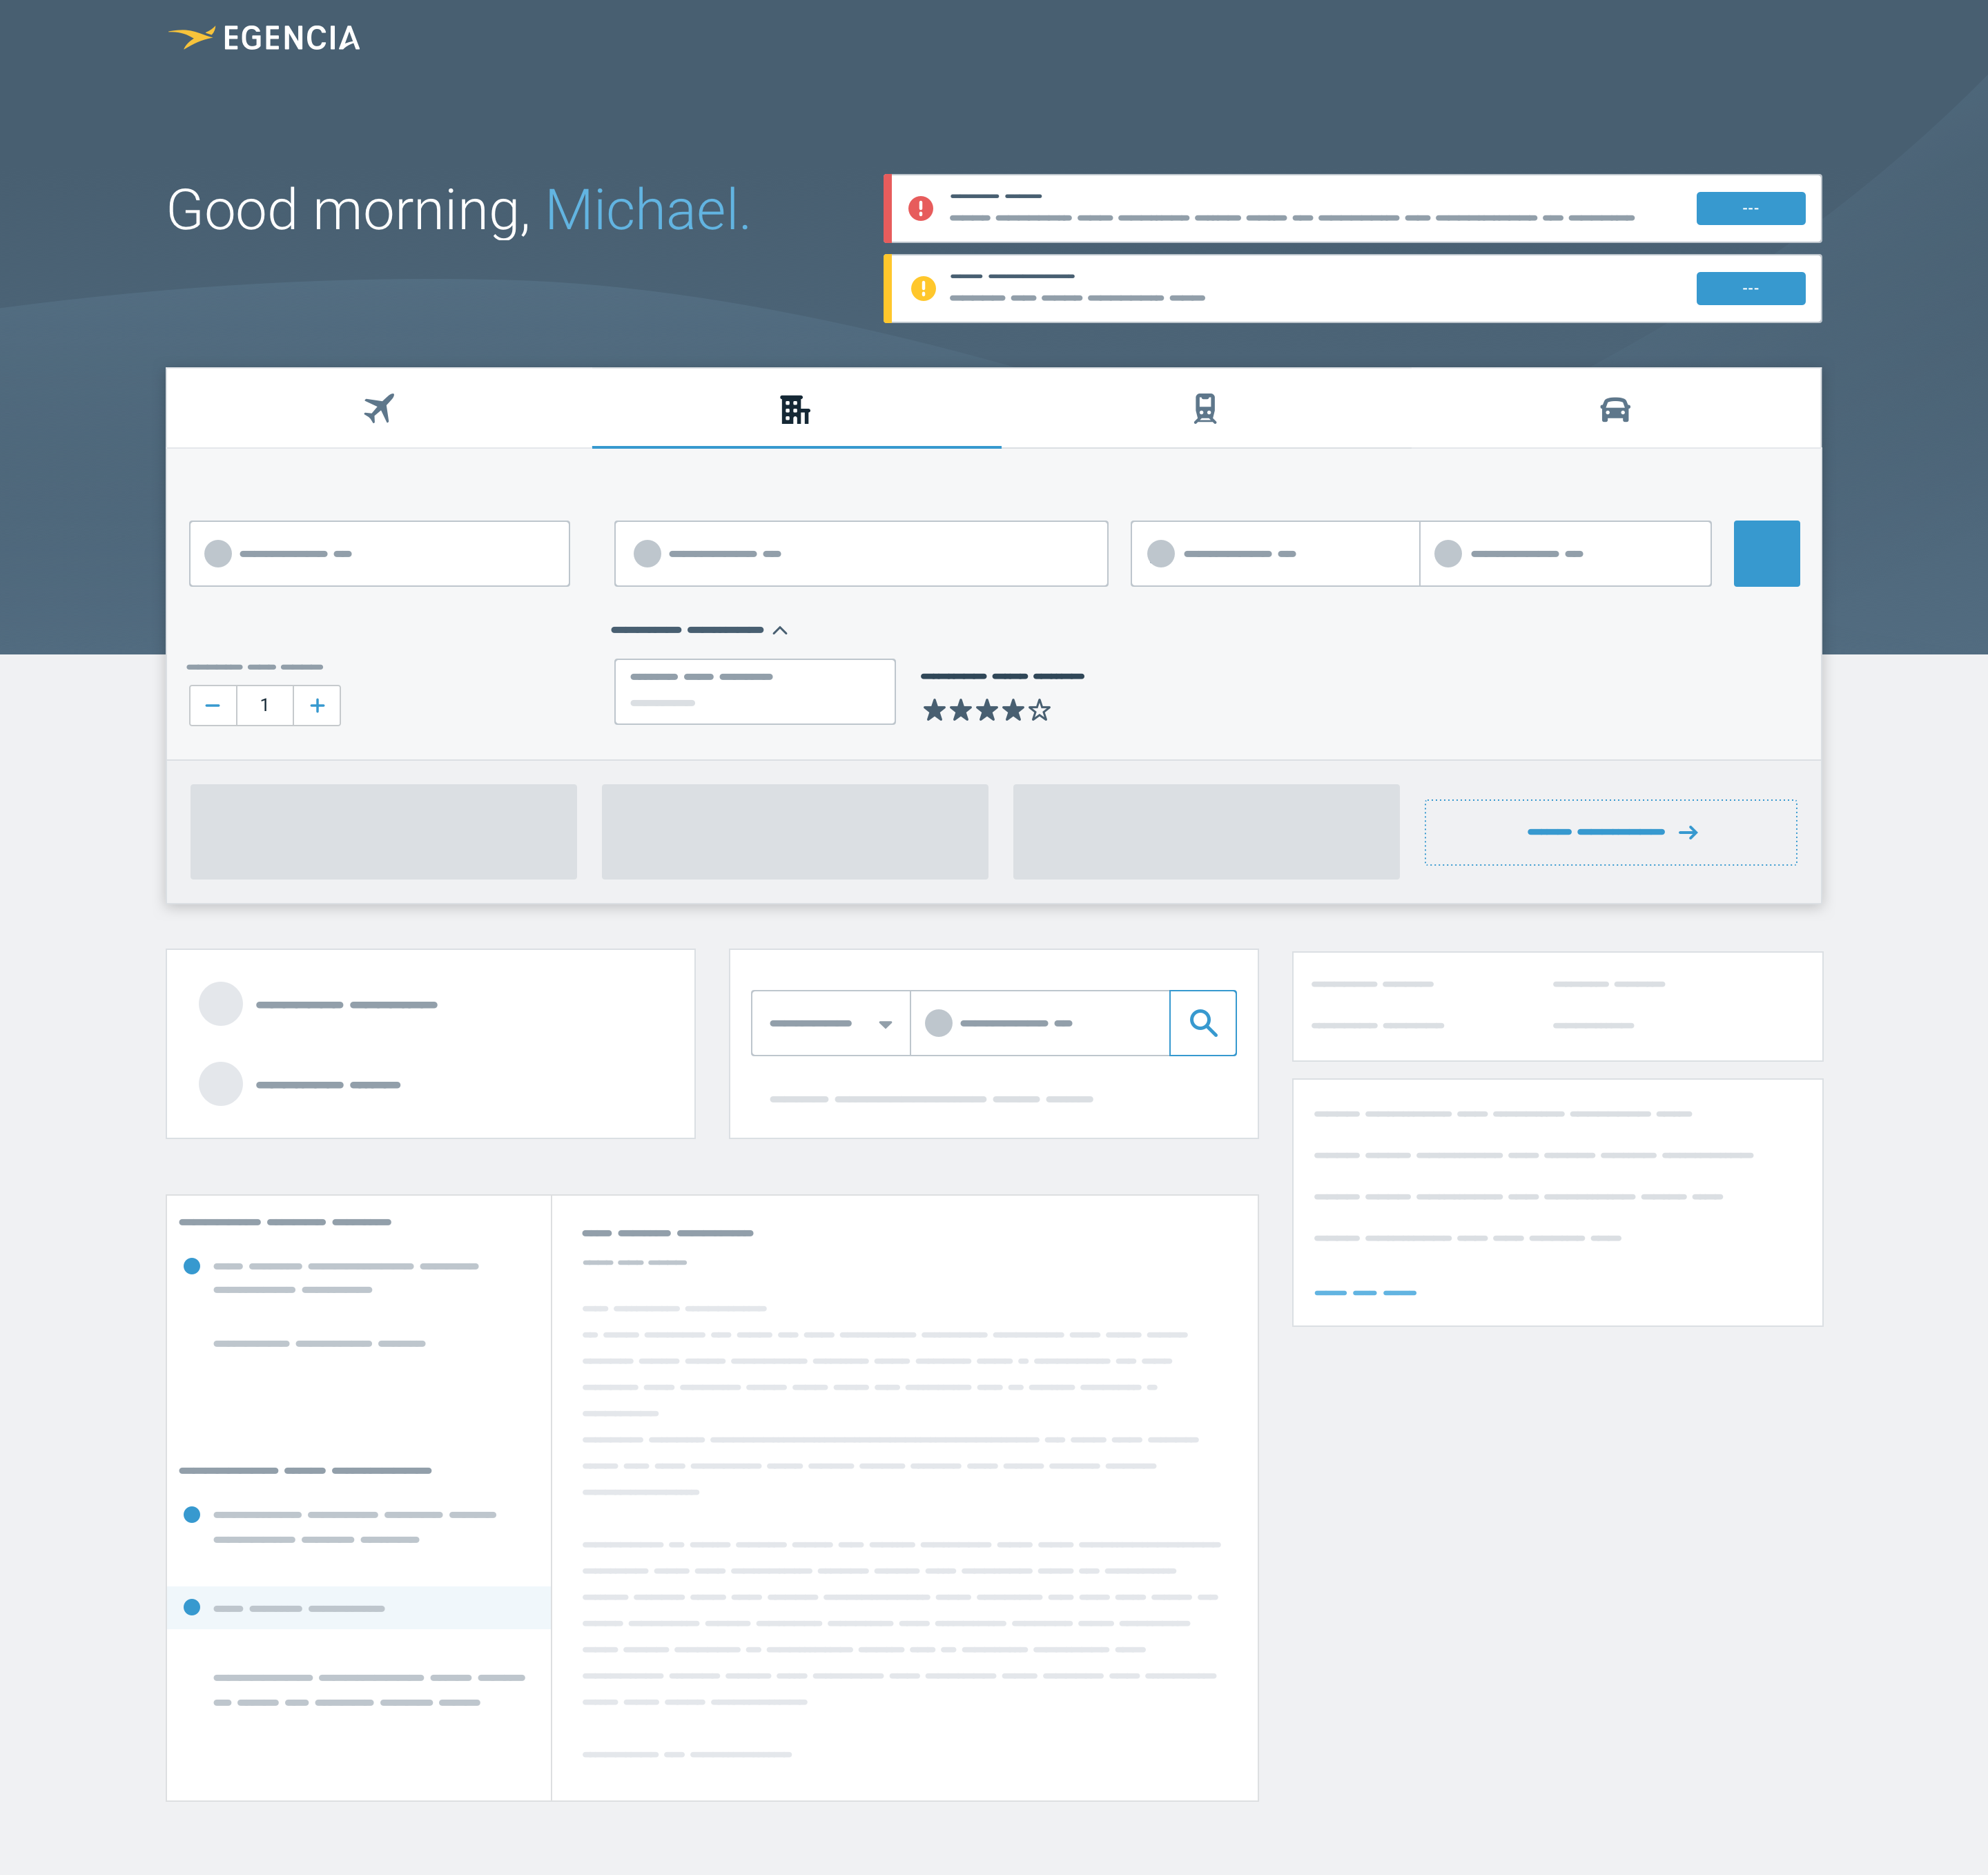 High fidelity wireframe of a new design for the homepage with document expiration alerts at the top of the page